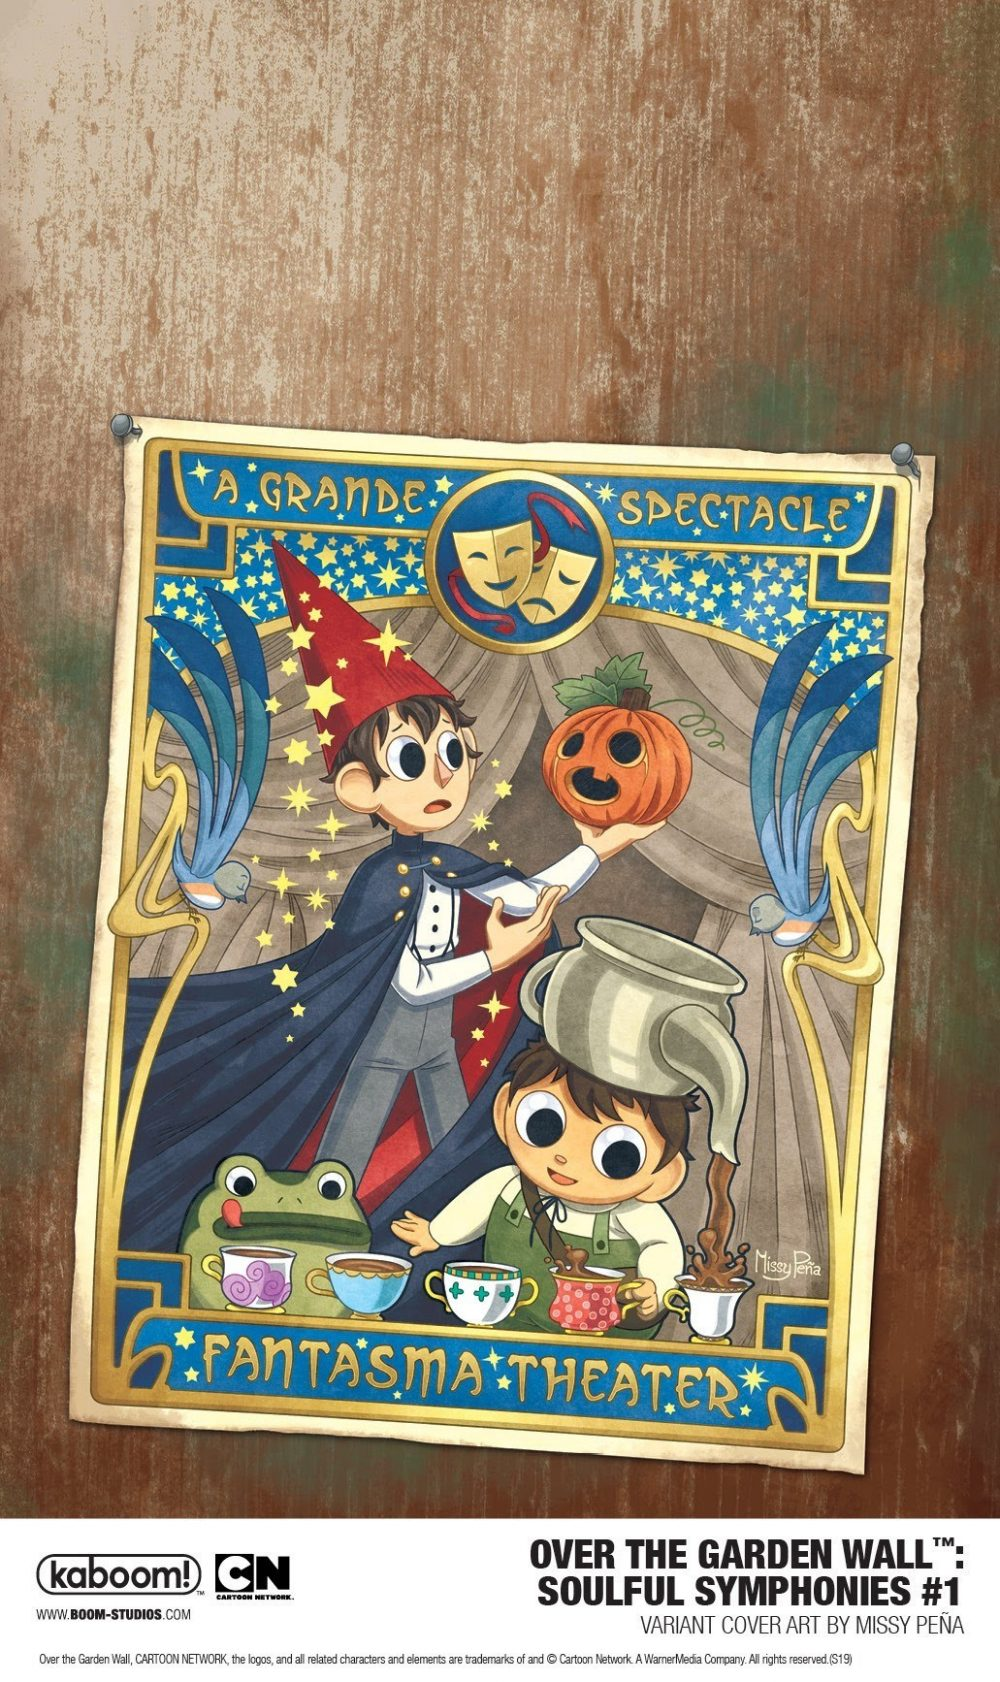 Over the Garden Wall: Soulful Symphonies, variant cover di Missy Pena